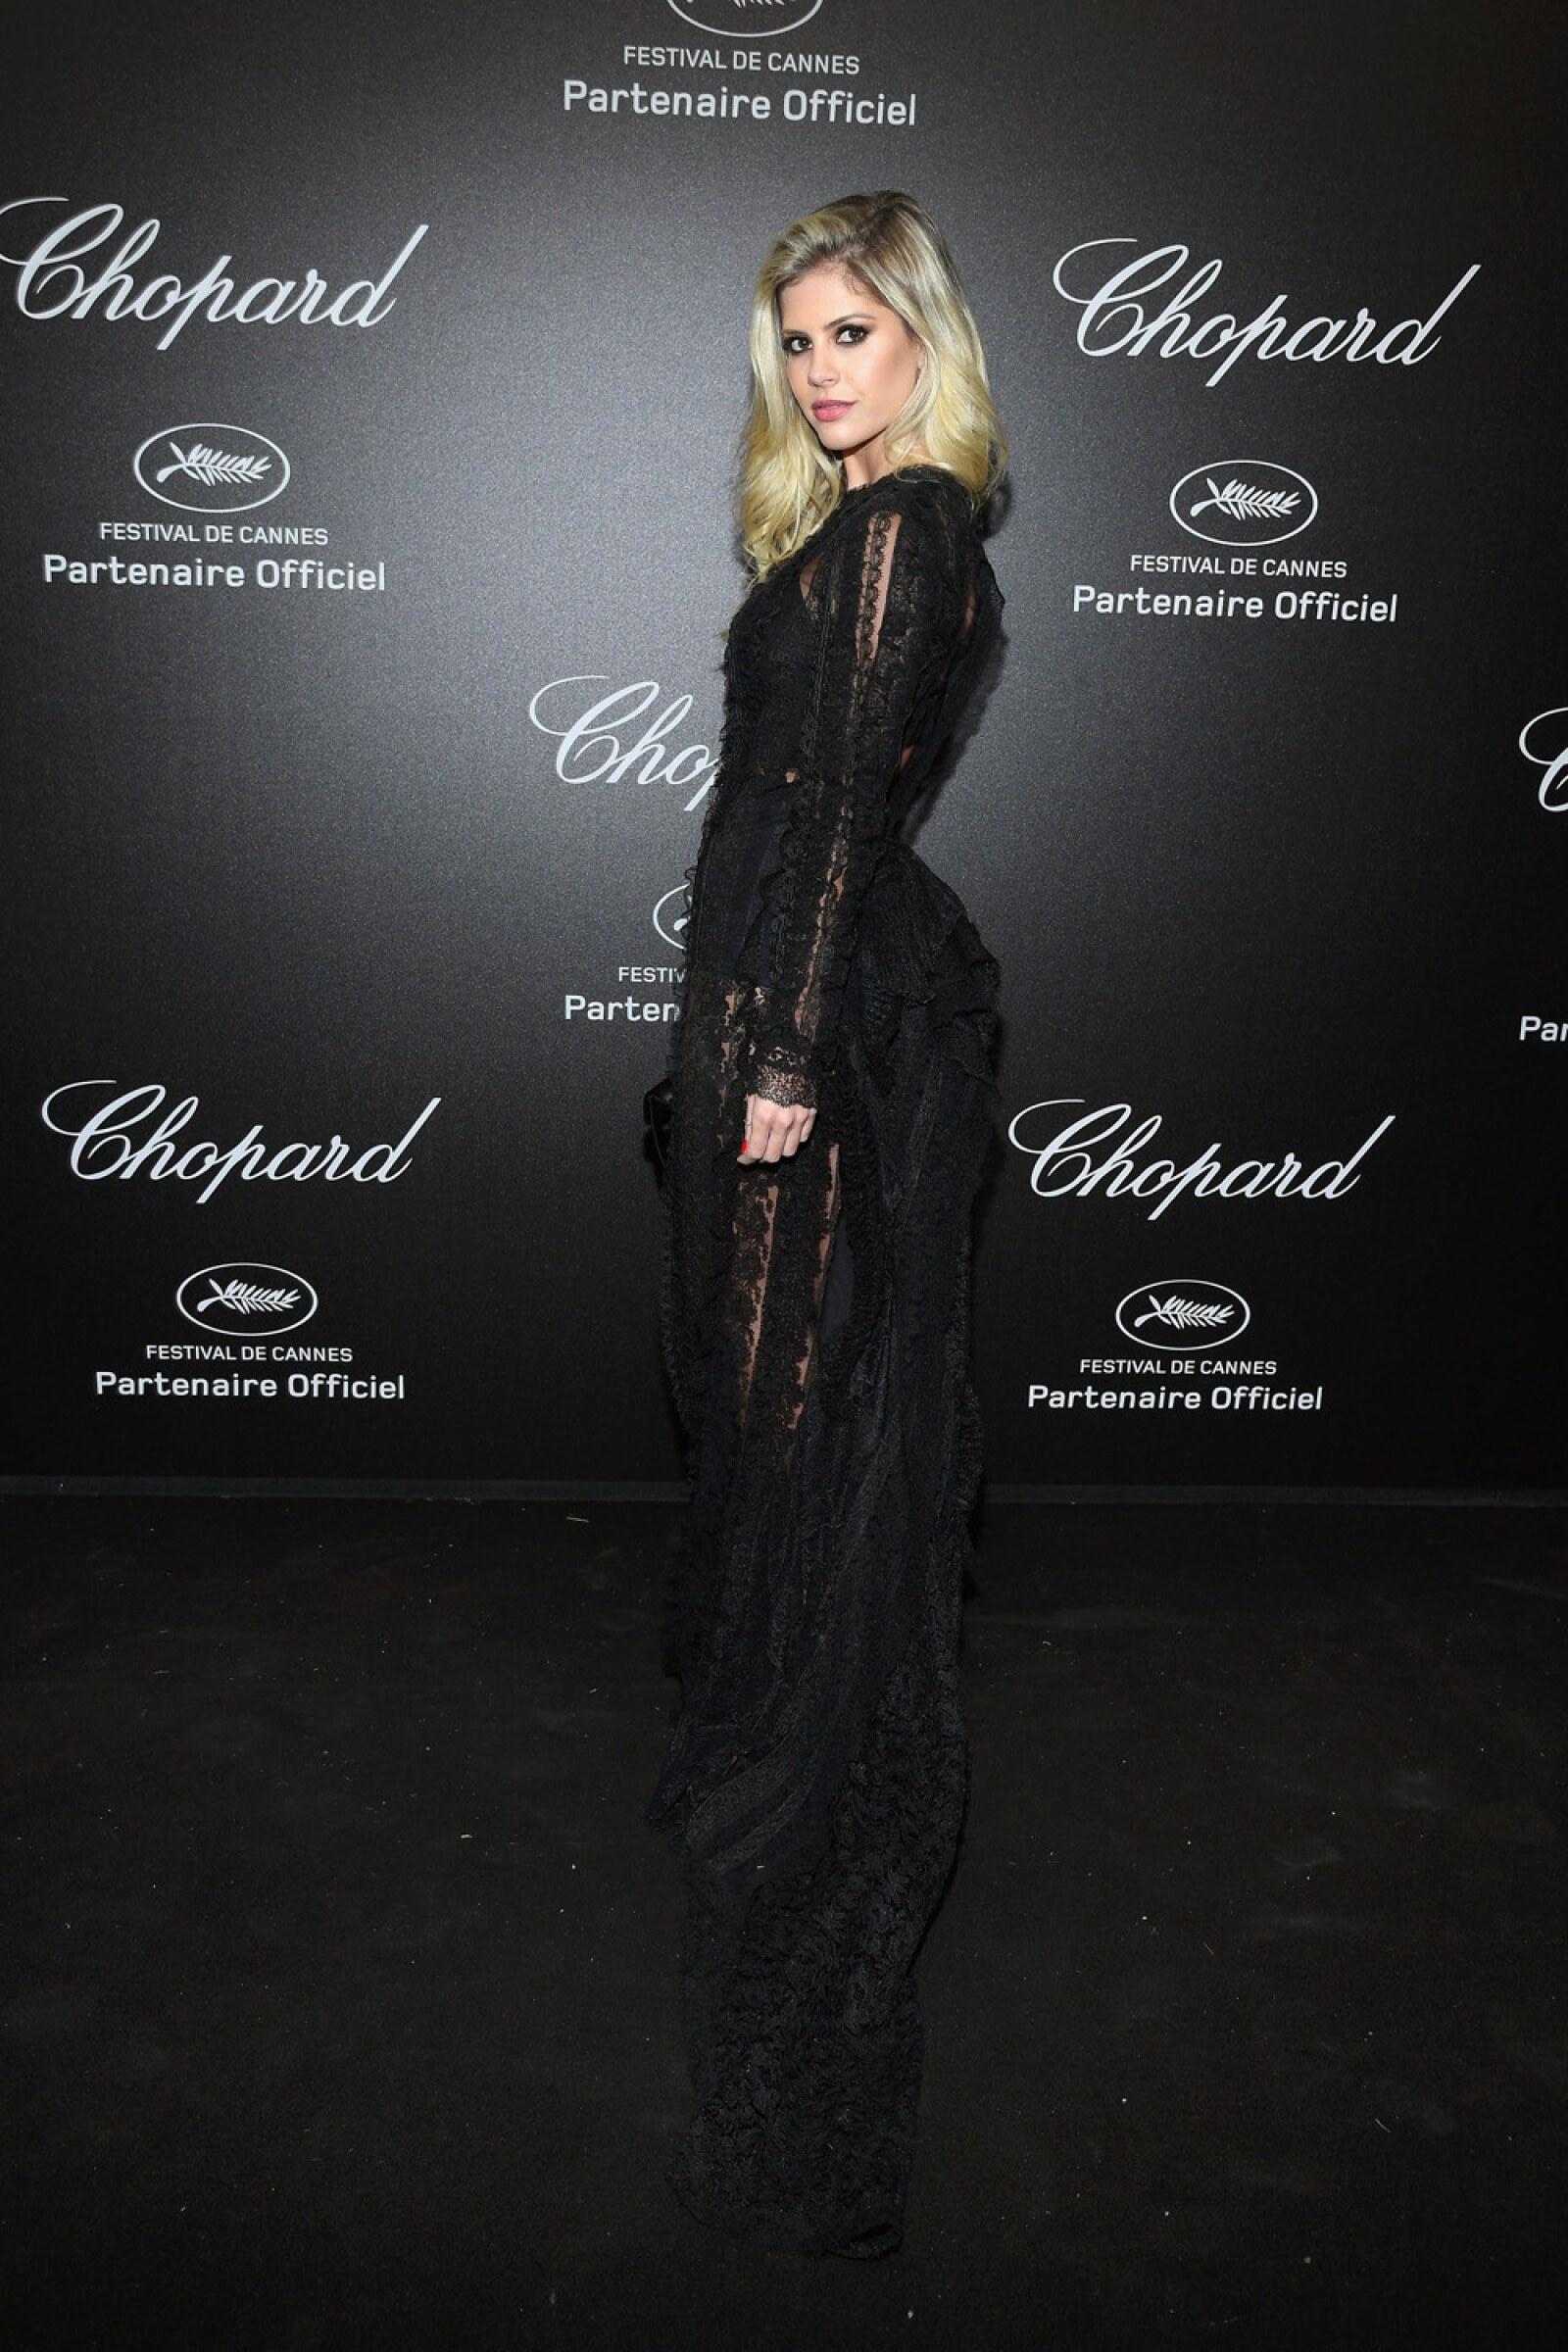 Chopard's Secret Night